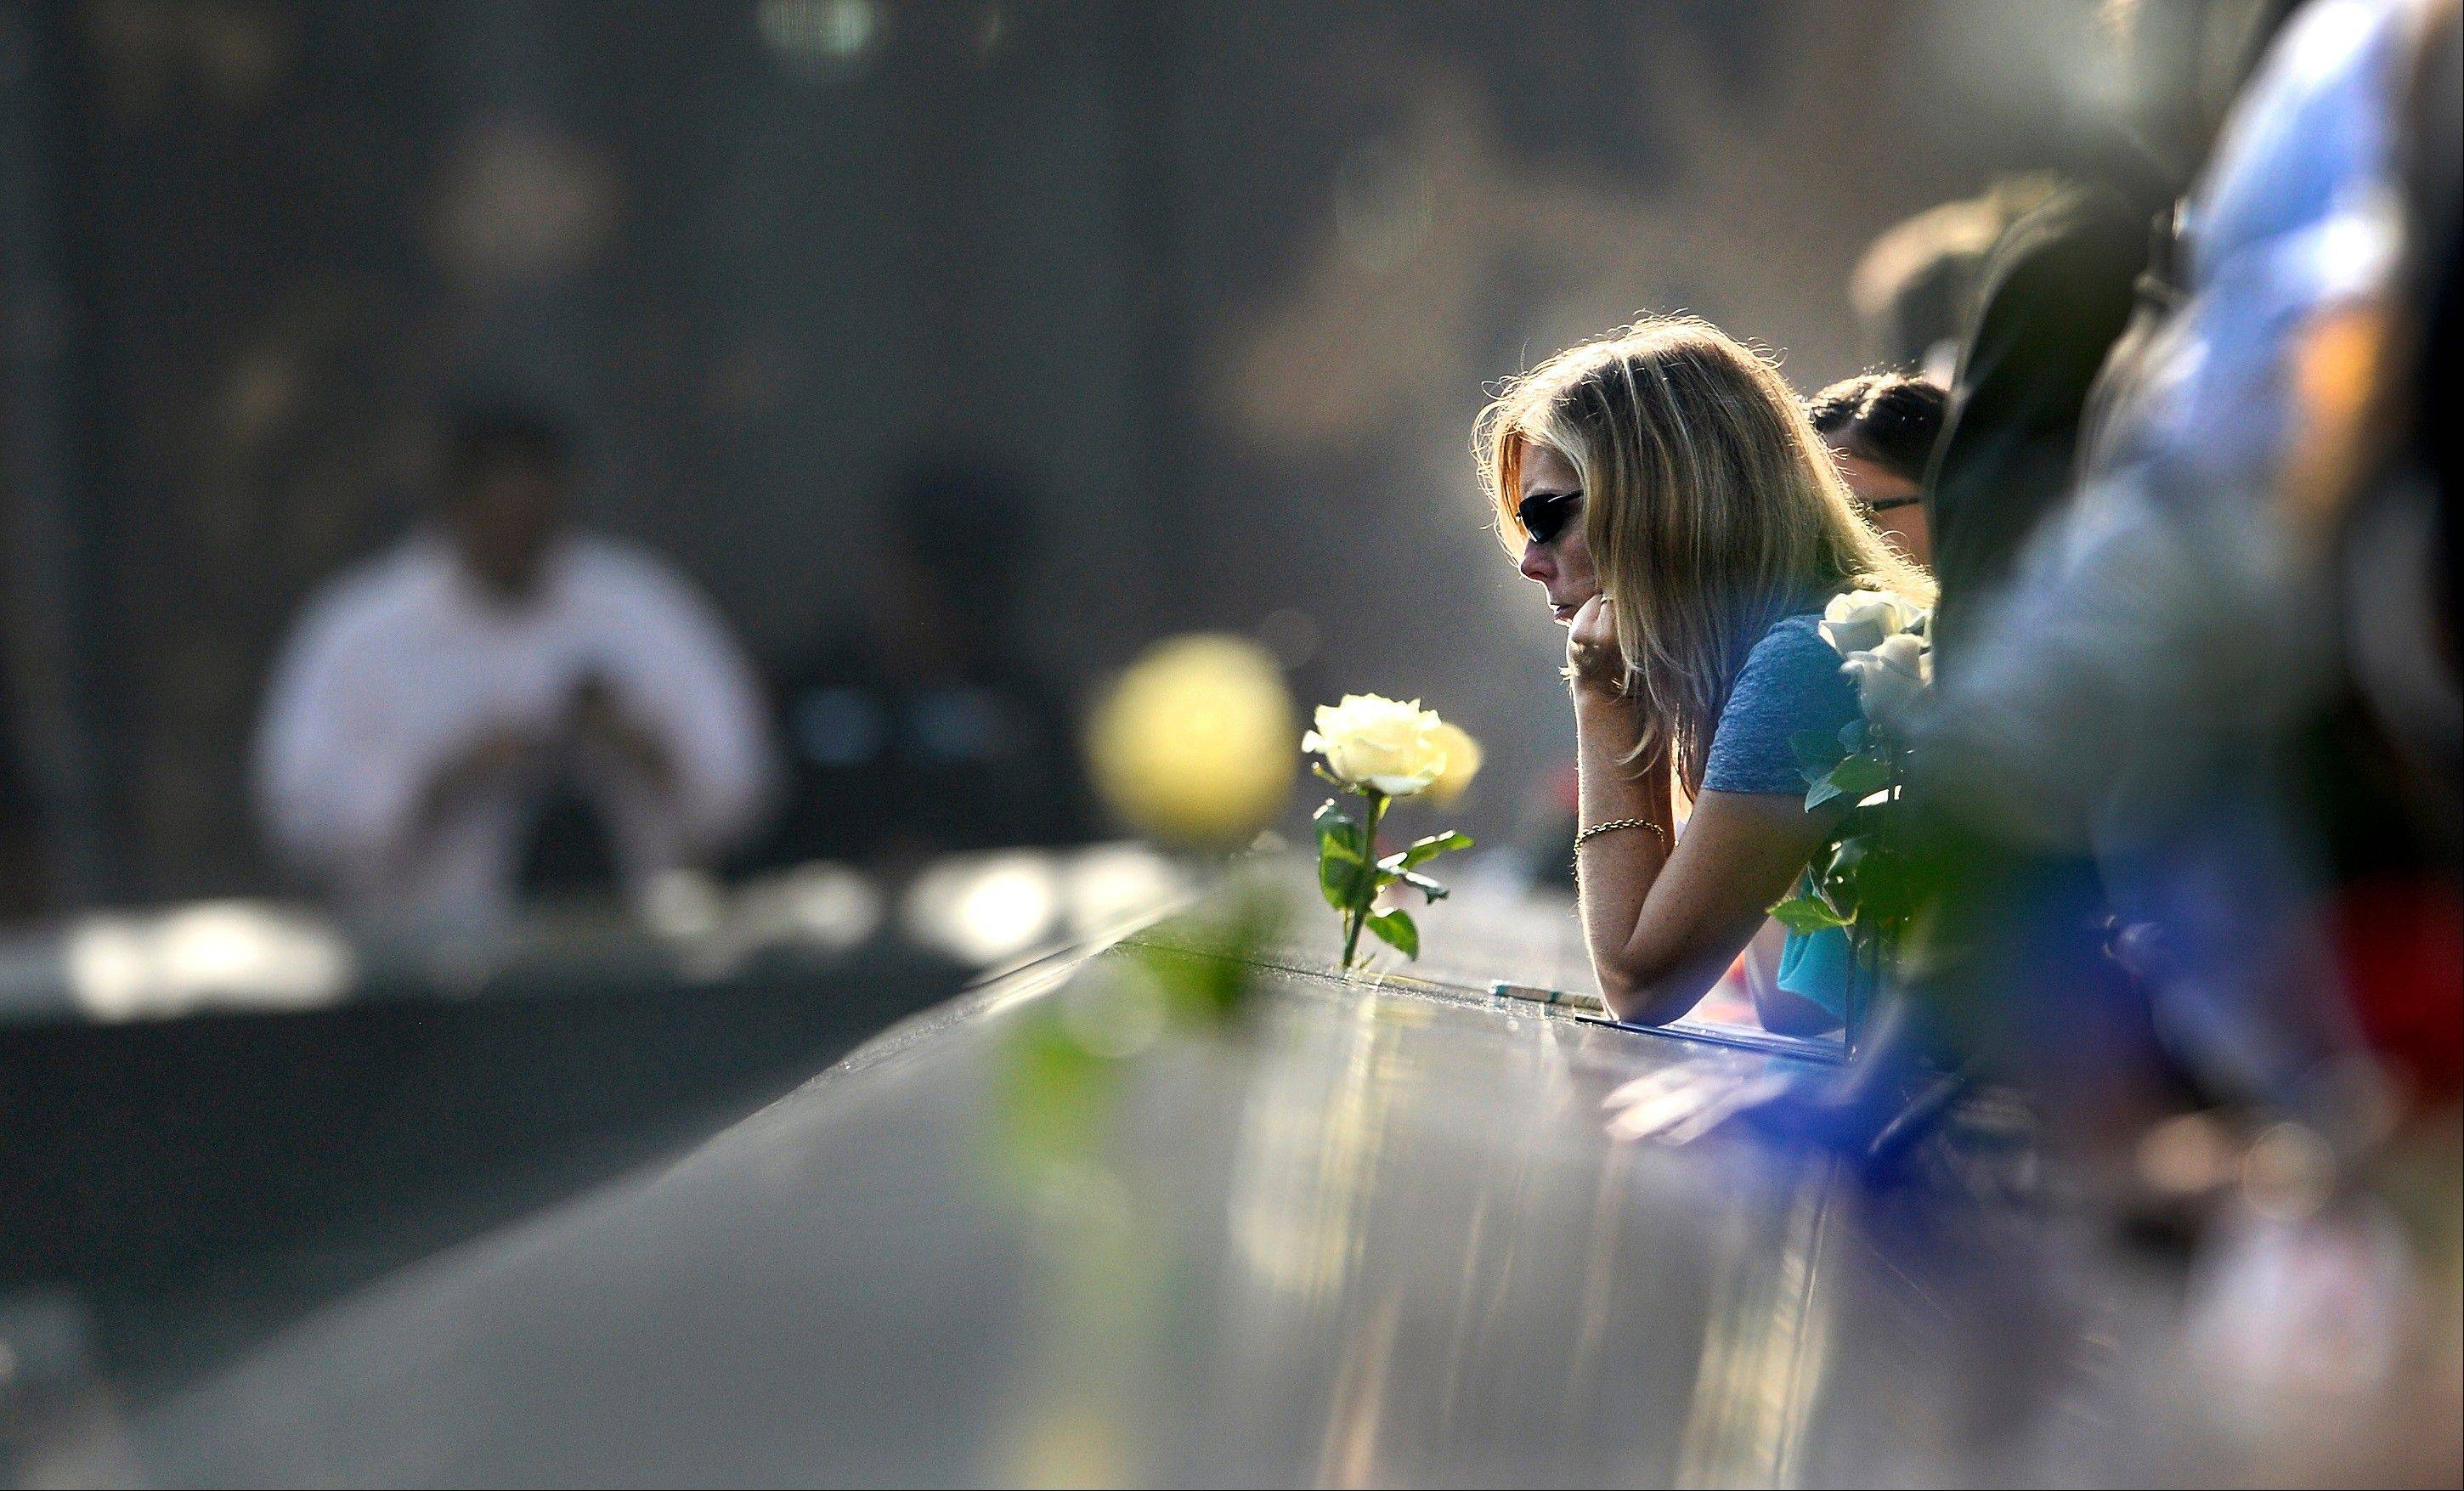 A woman pauses along the edge of the north reflecting pool at the Sept. 11 memorial during a ceremony marking the 12th anniversary of the 9/11 attacks on the World Trade Center in New York, September 11, 2013.